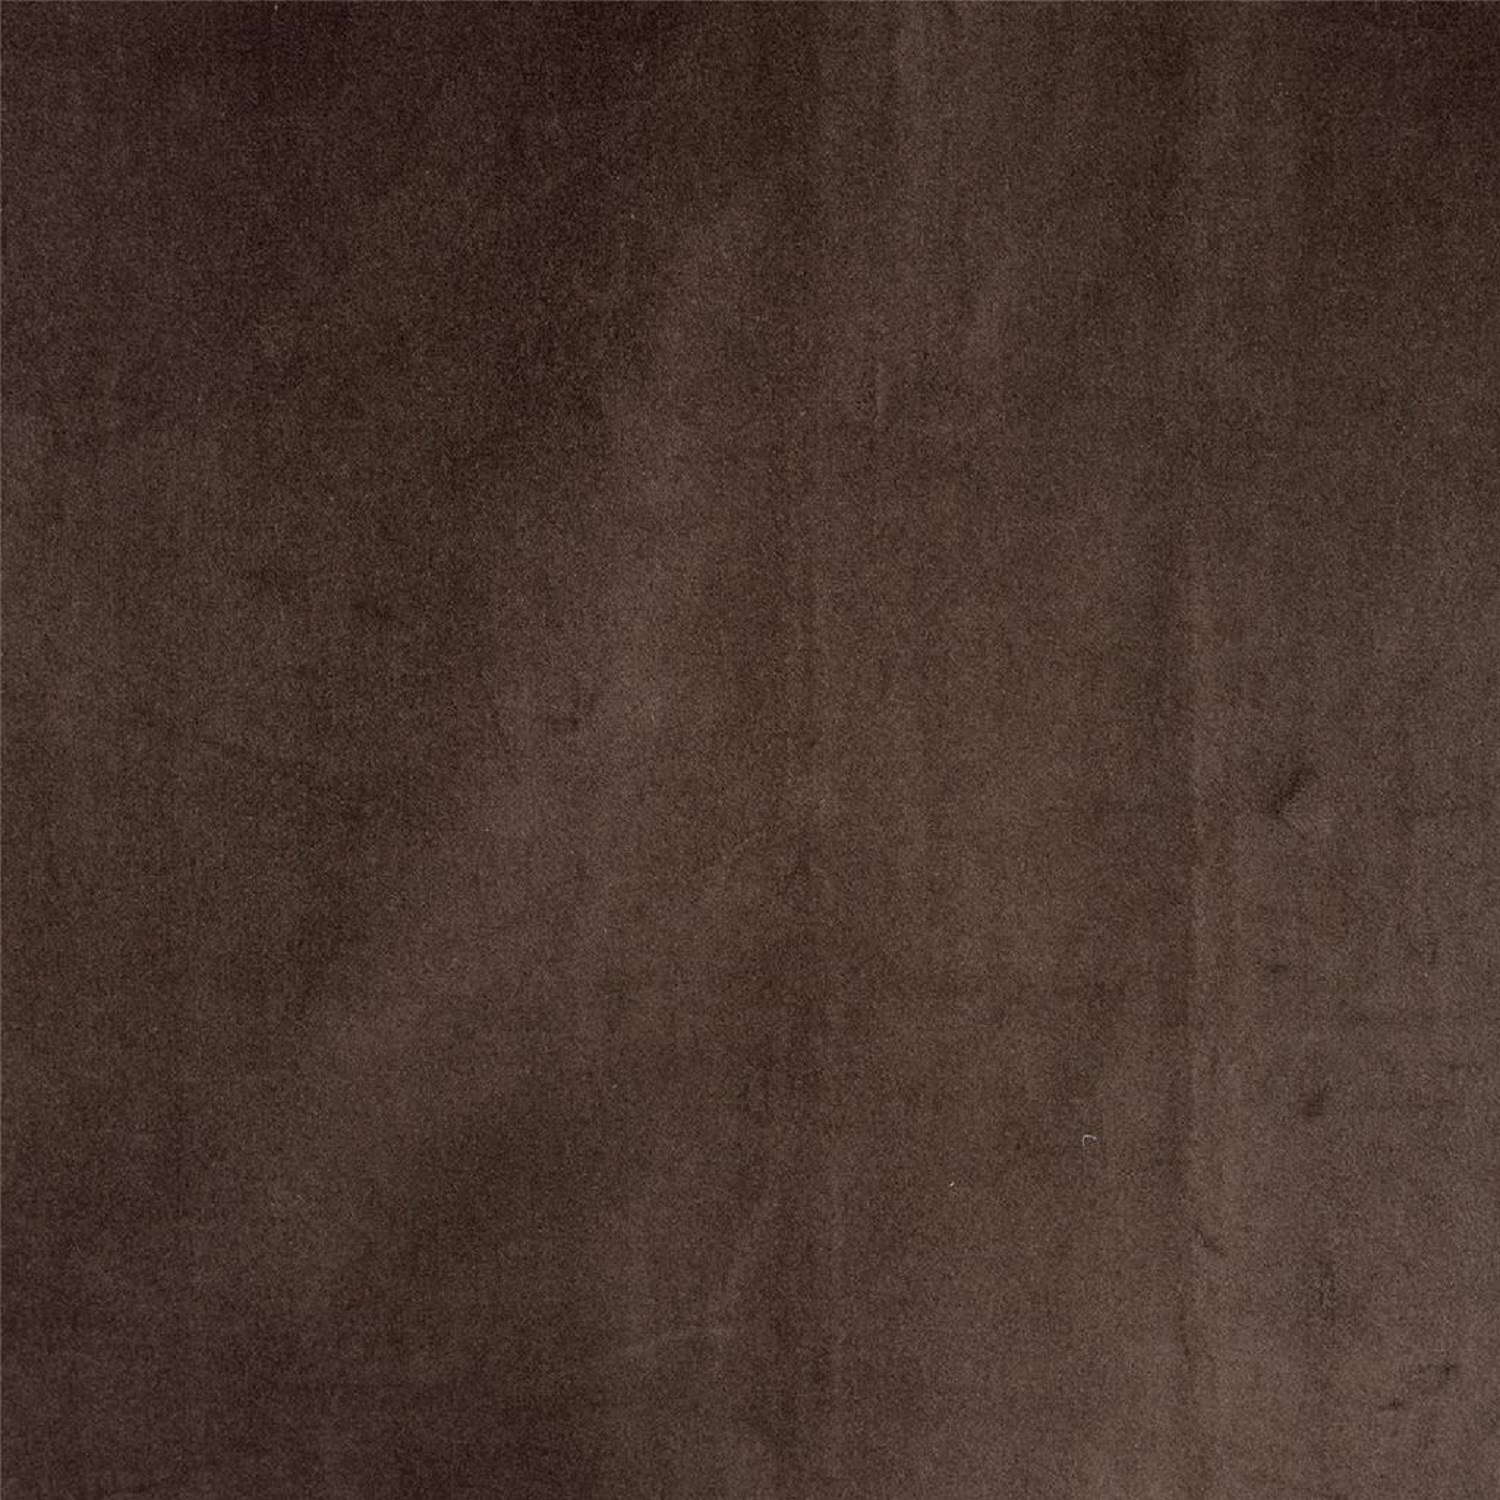 Ash Brown Vintage Cotton Velvet Swatch